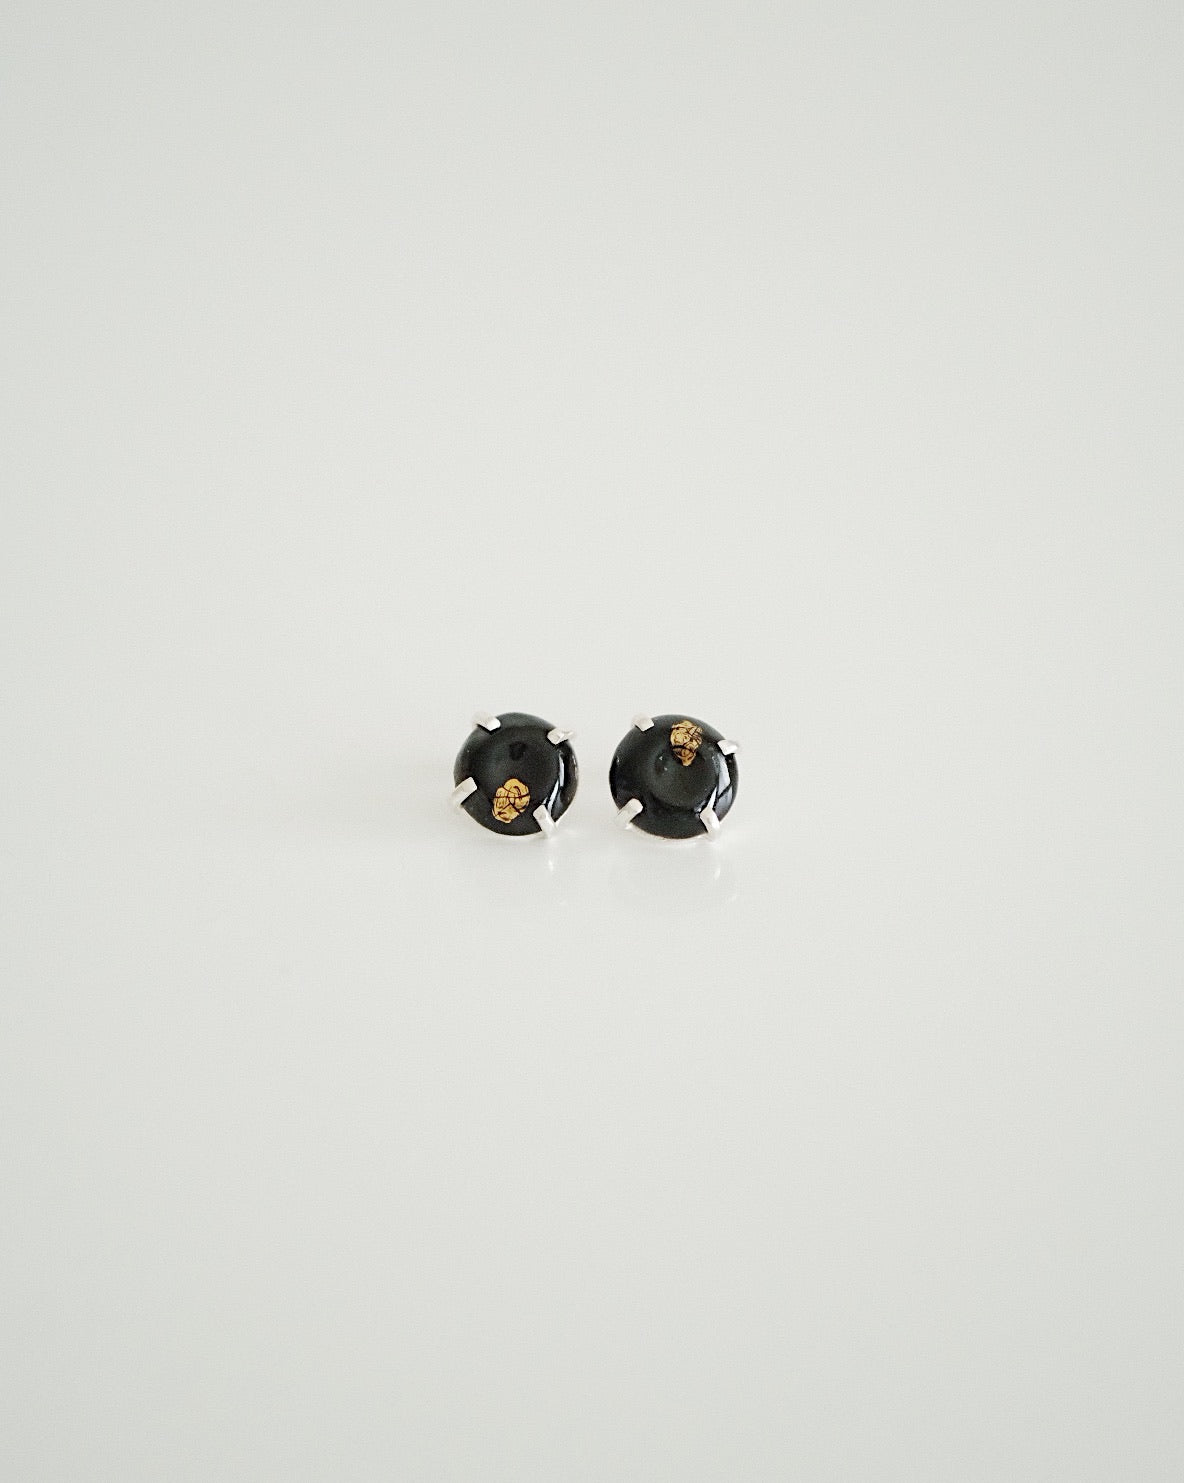 Chilbo Earrings - Sung Yeon Kim